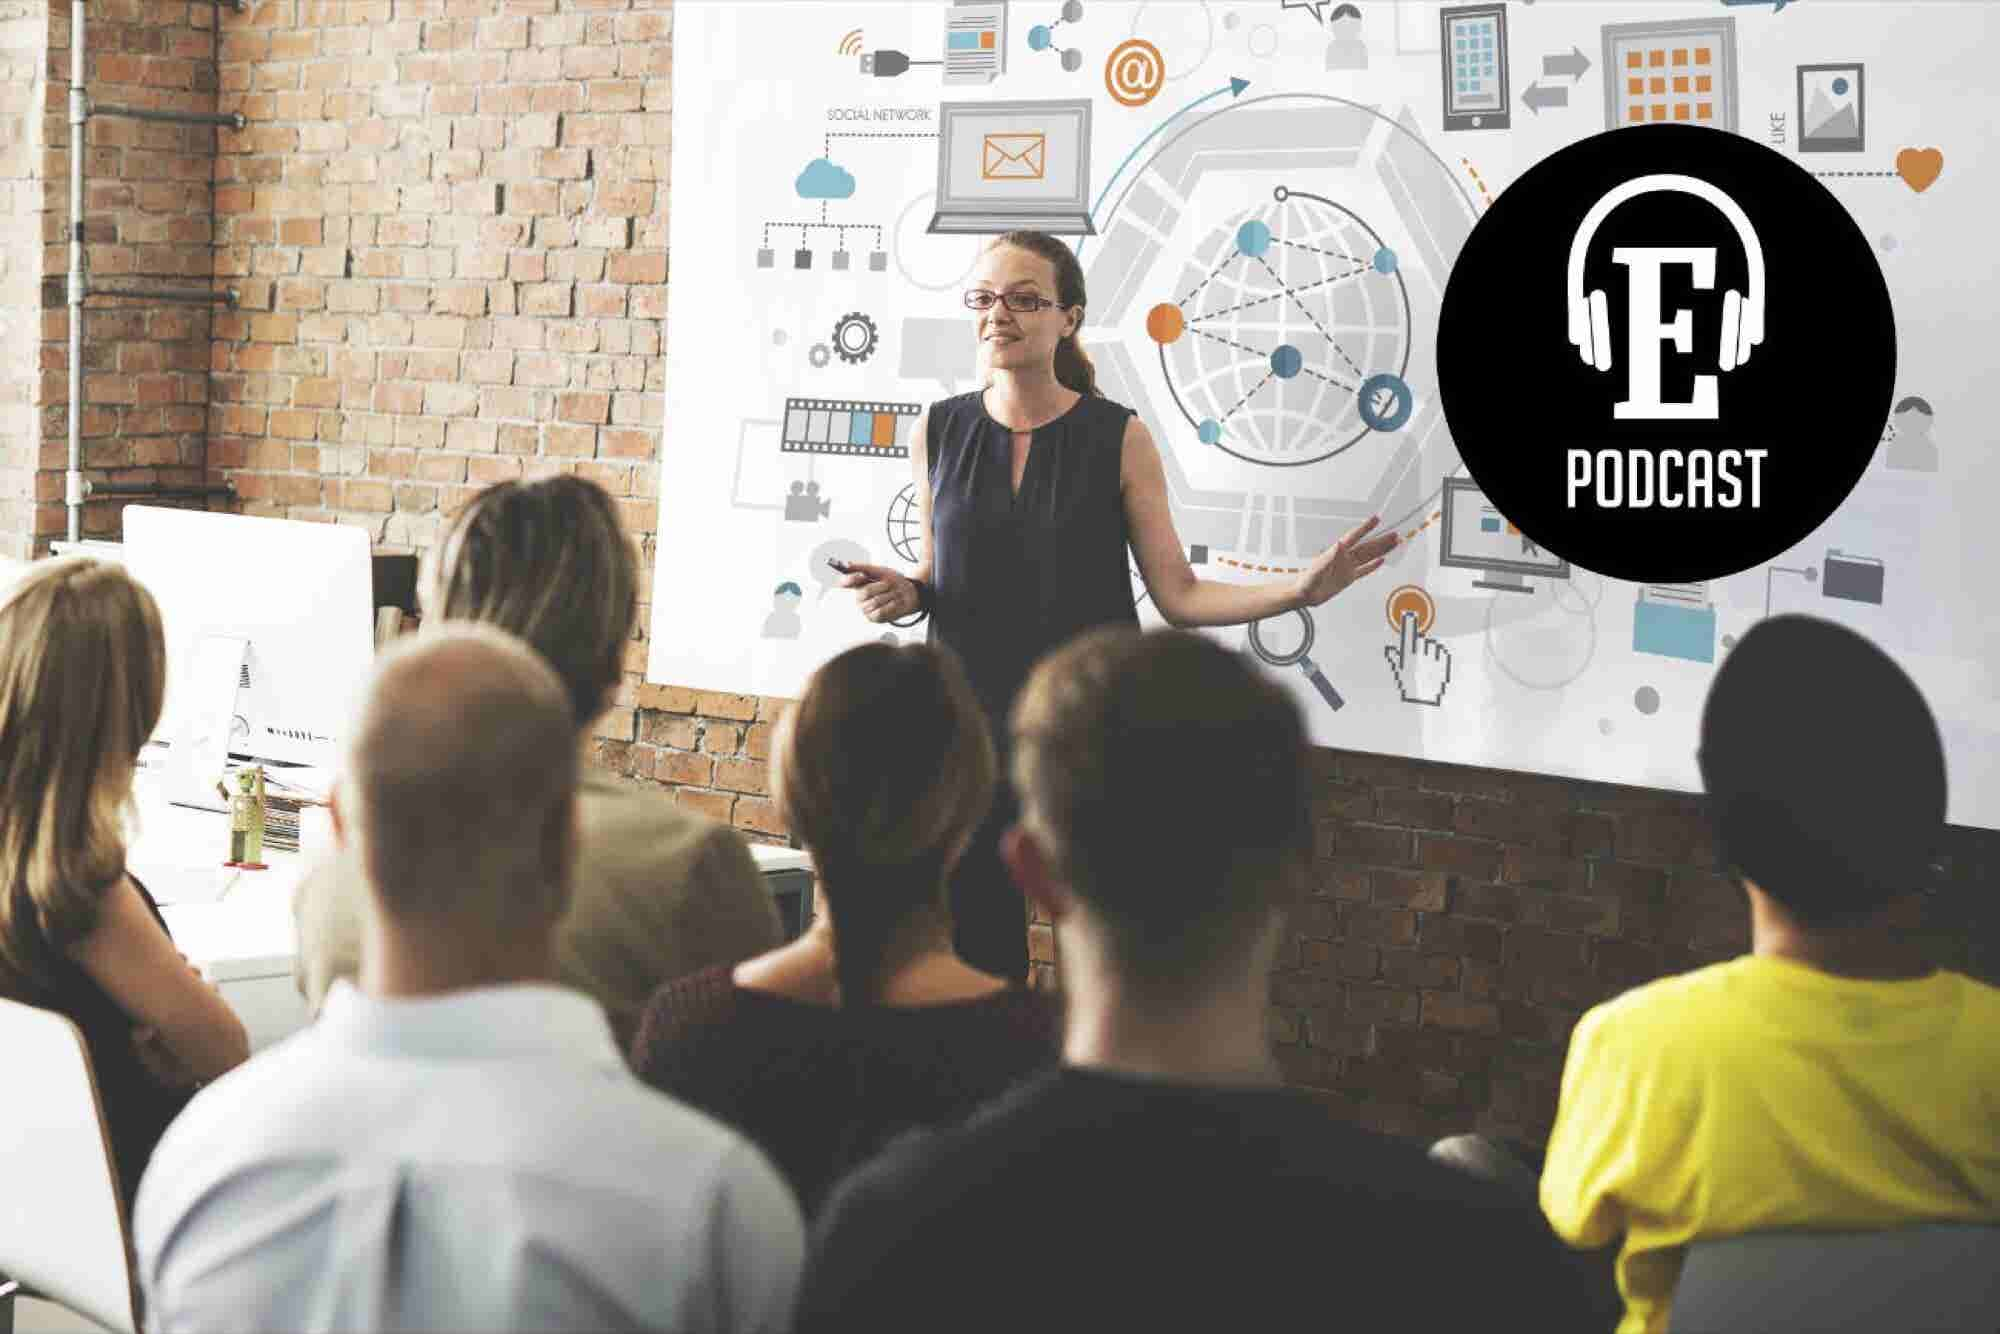 Podcast Entrepreneur # 5: Claves para presentar un pitch convincente y ganador